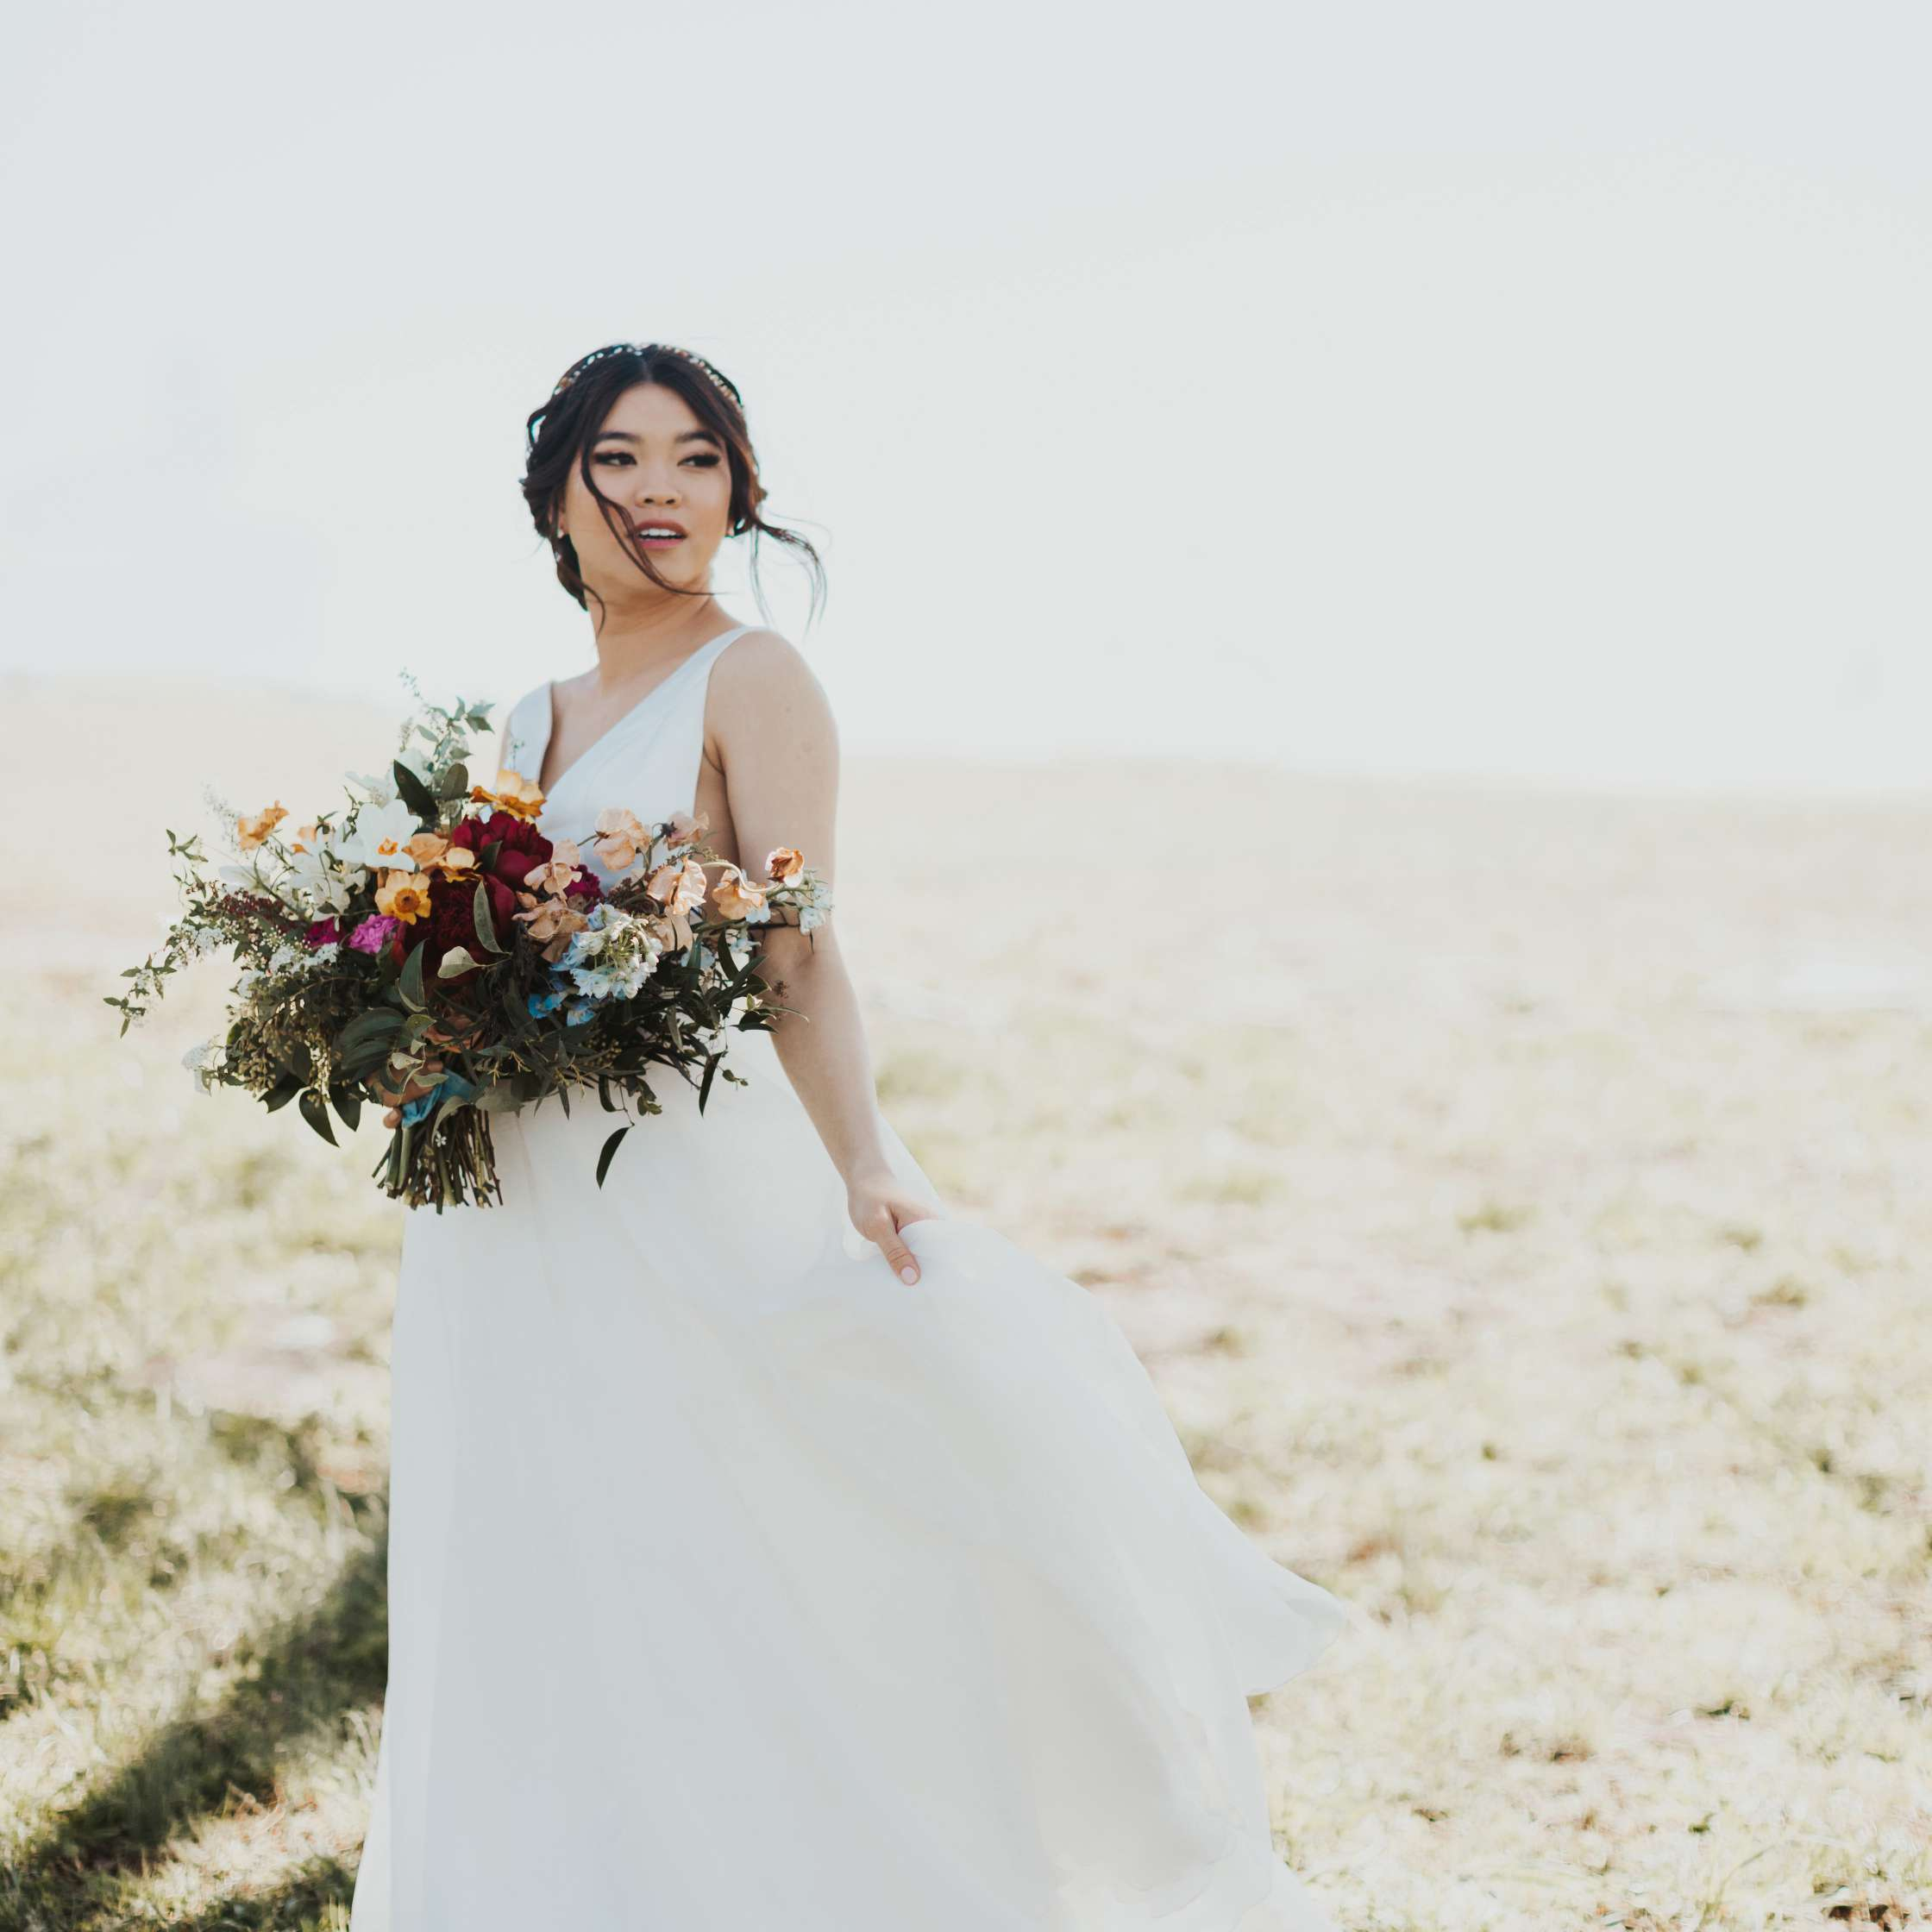 Bride standing outside holding her bouquet